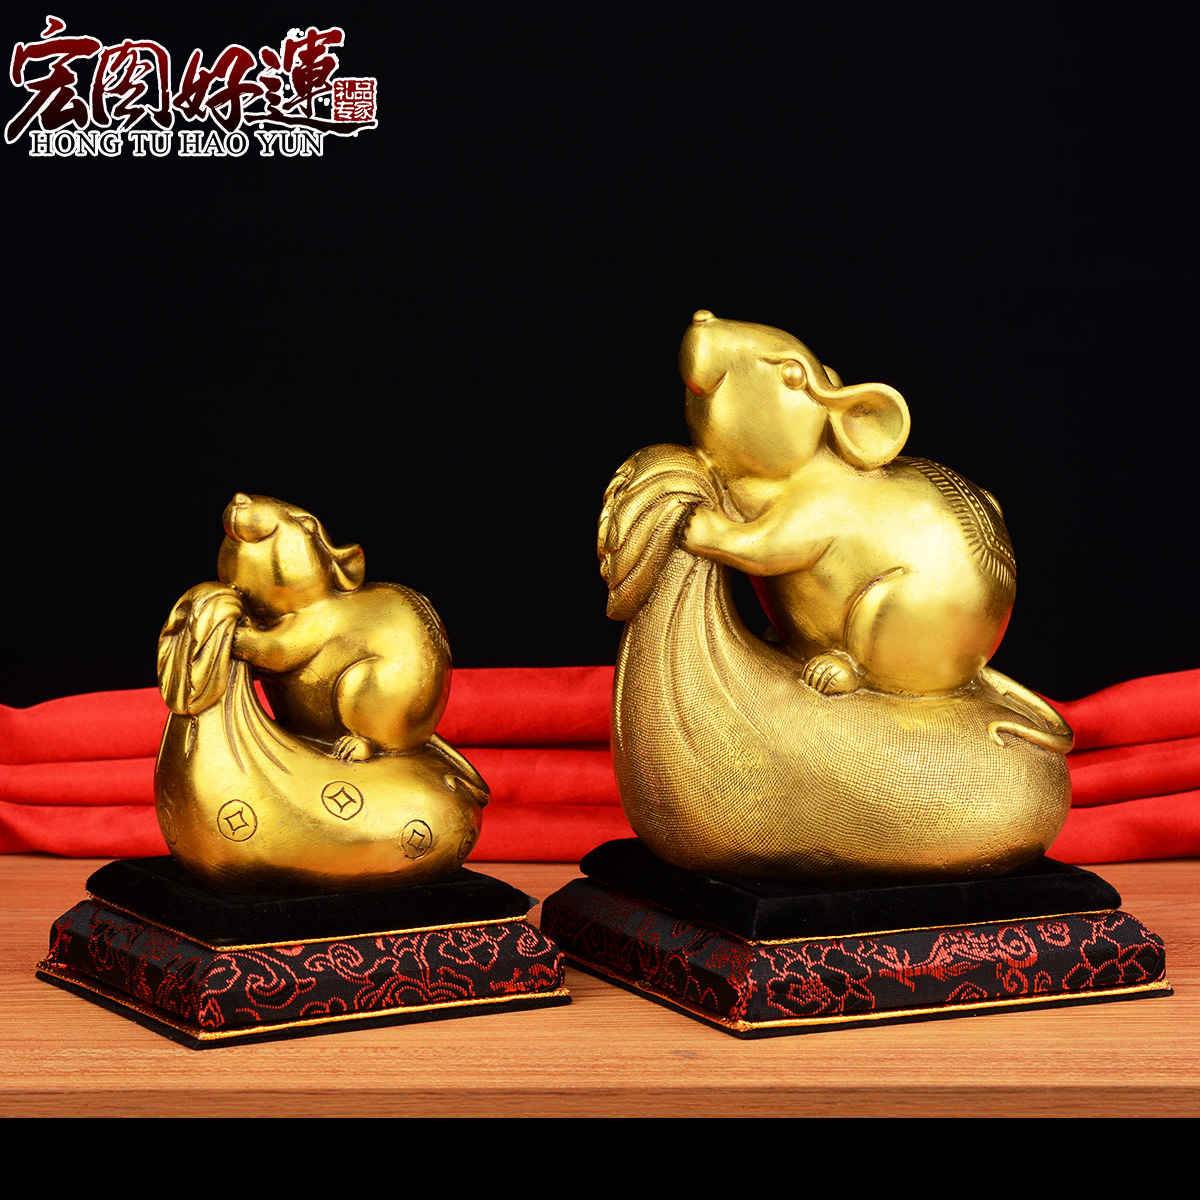 Good luck grand opening feng shui copper mouse mouse ornaments gold bag twelve students schow copper ornaments rat trick cai